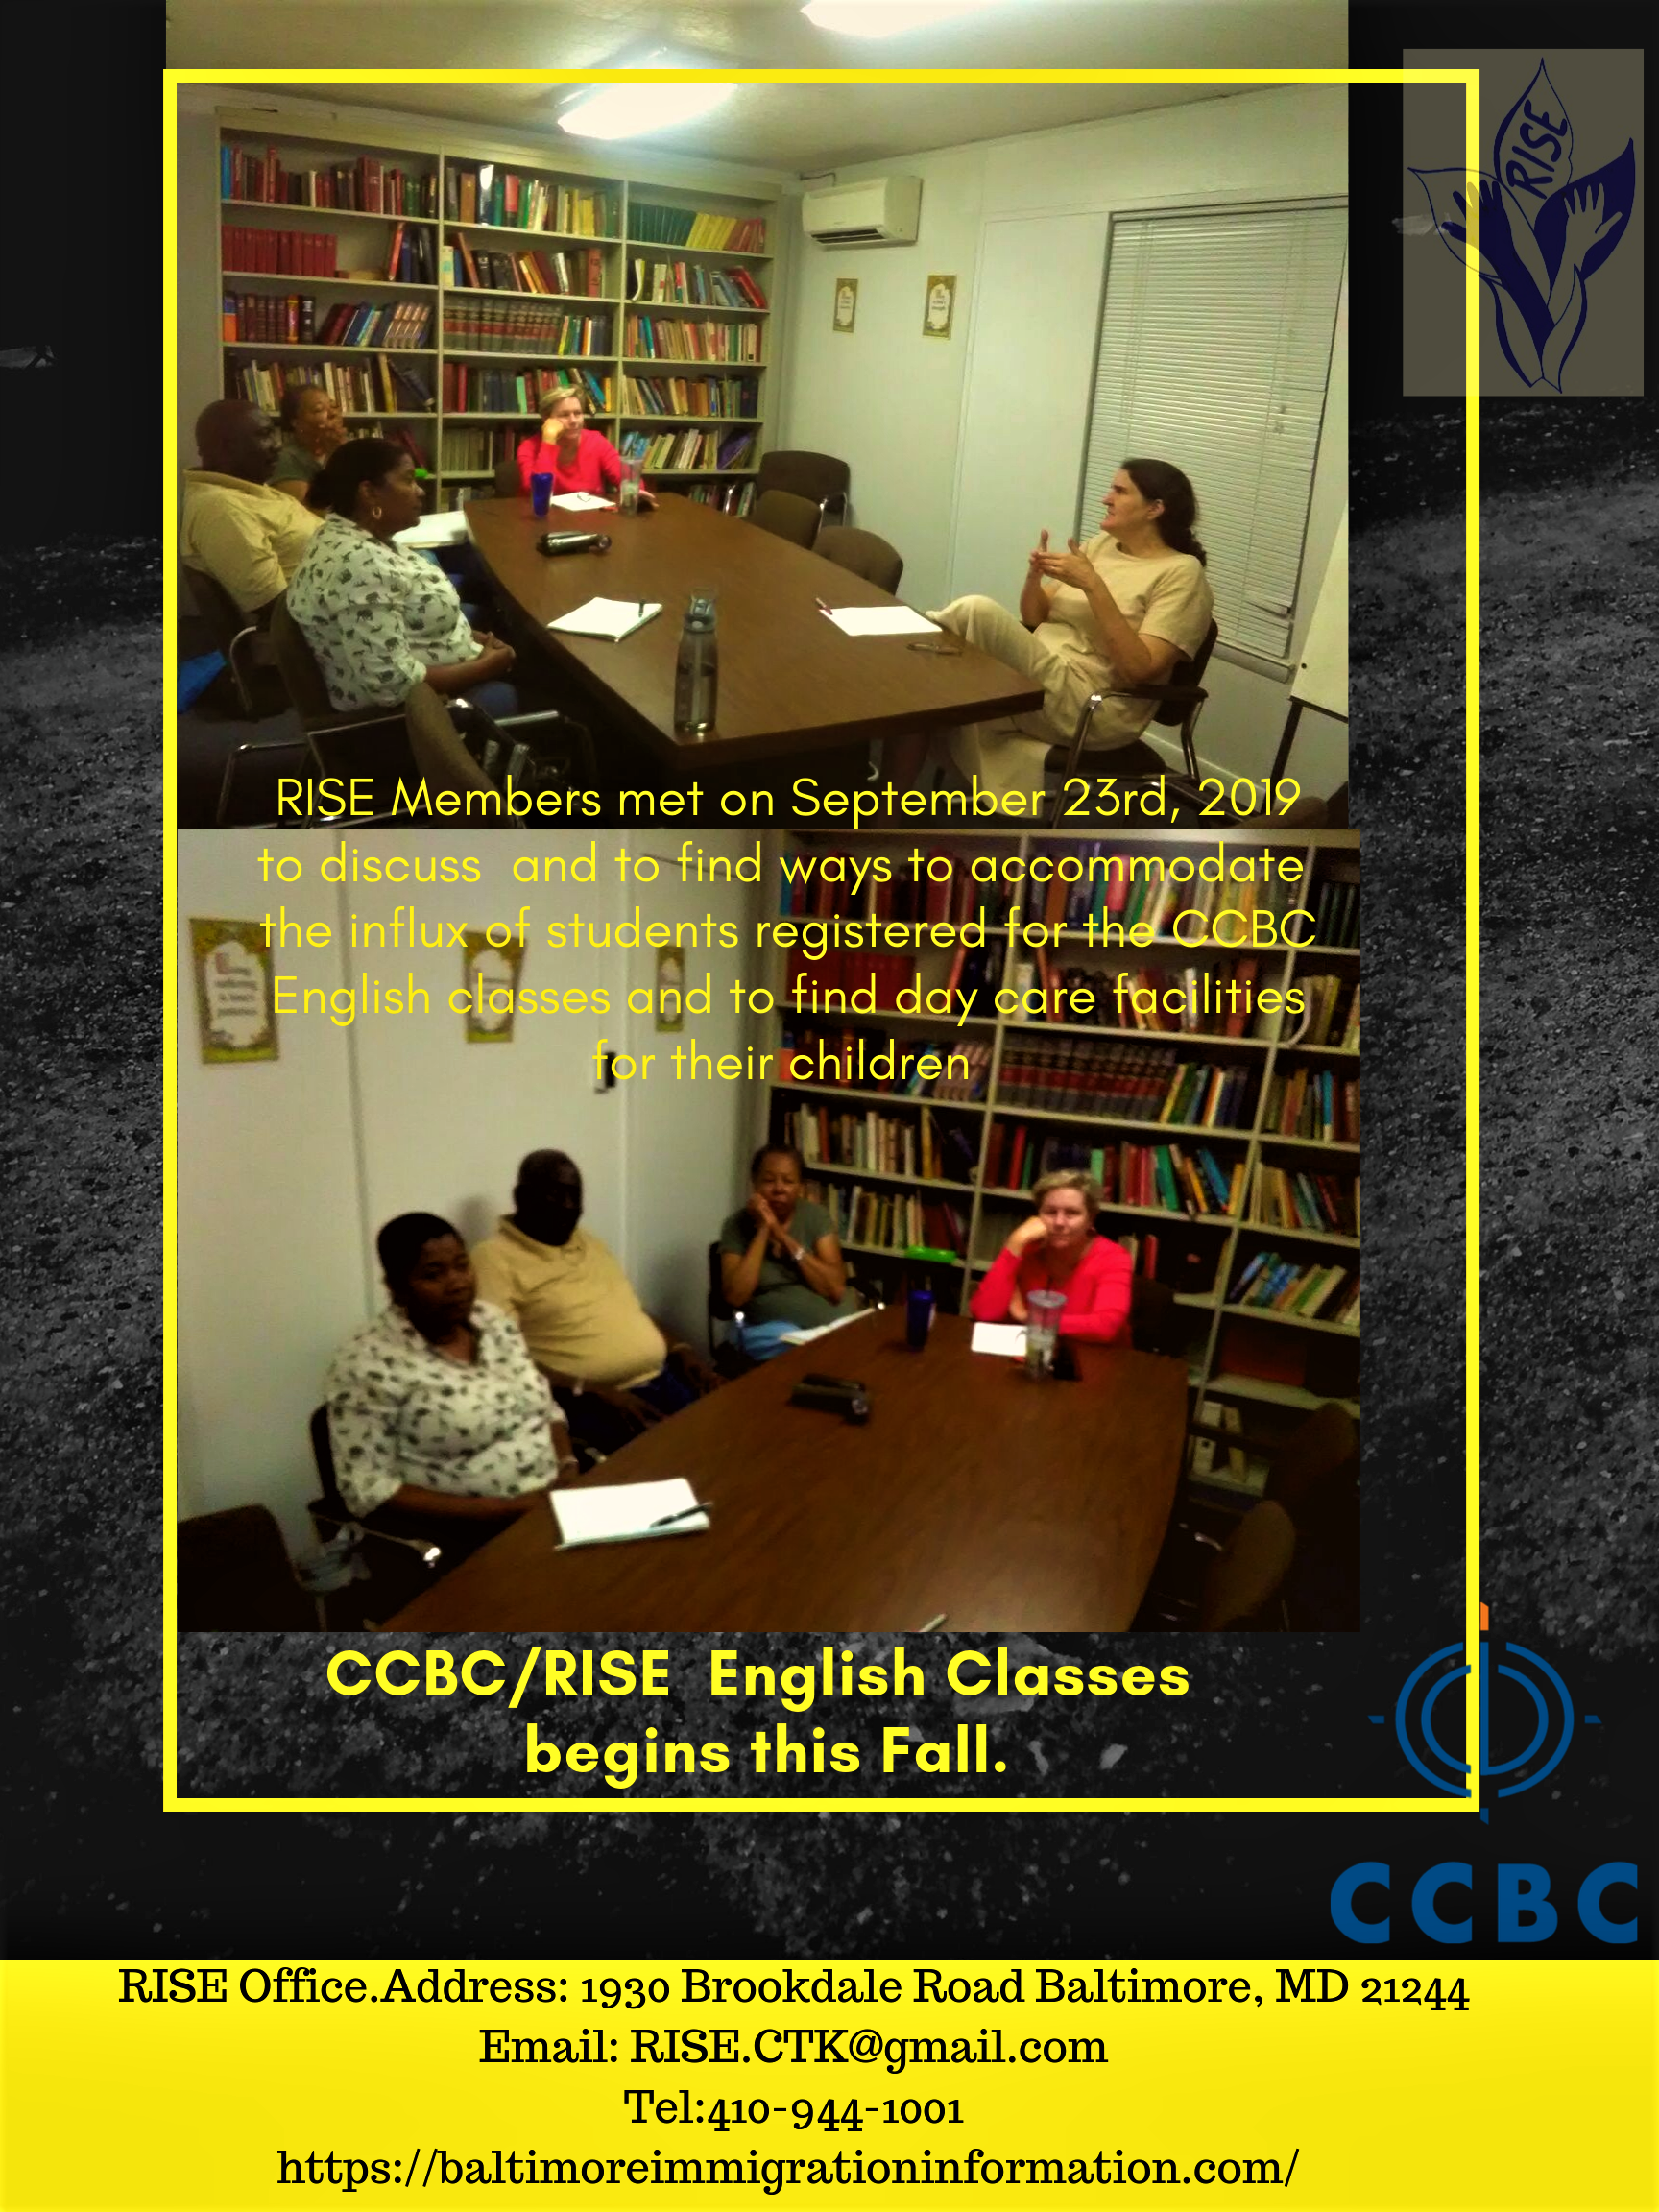 Dealing with the Influx and accommodating new English Learners at RISE/CCBC Fall Classes